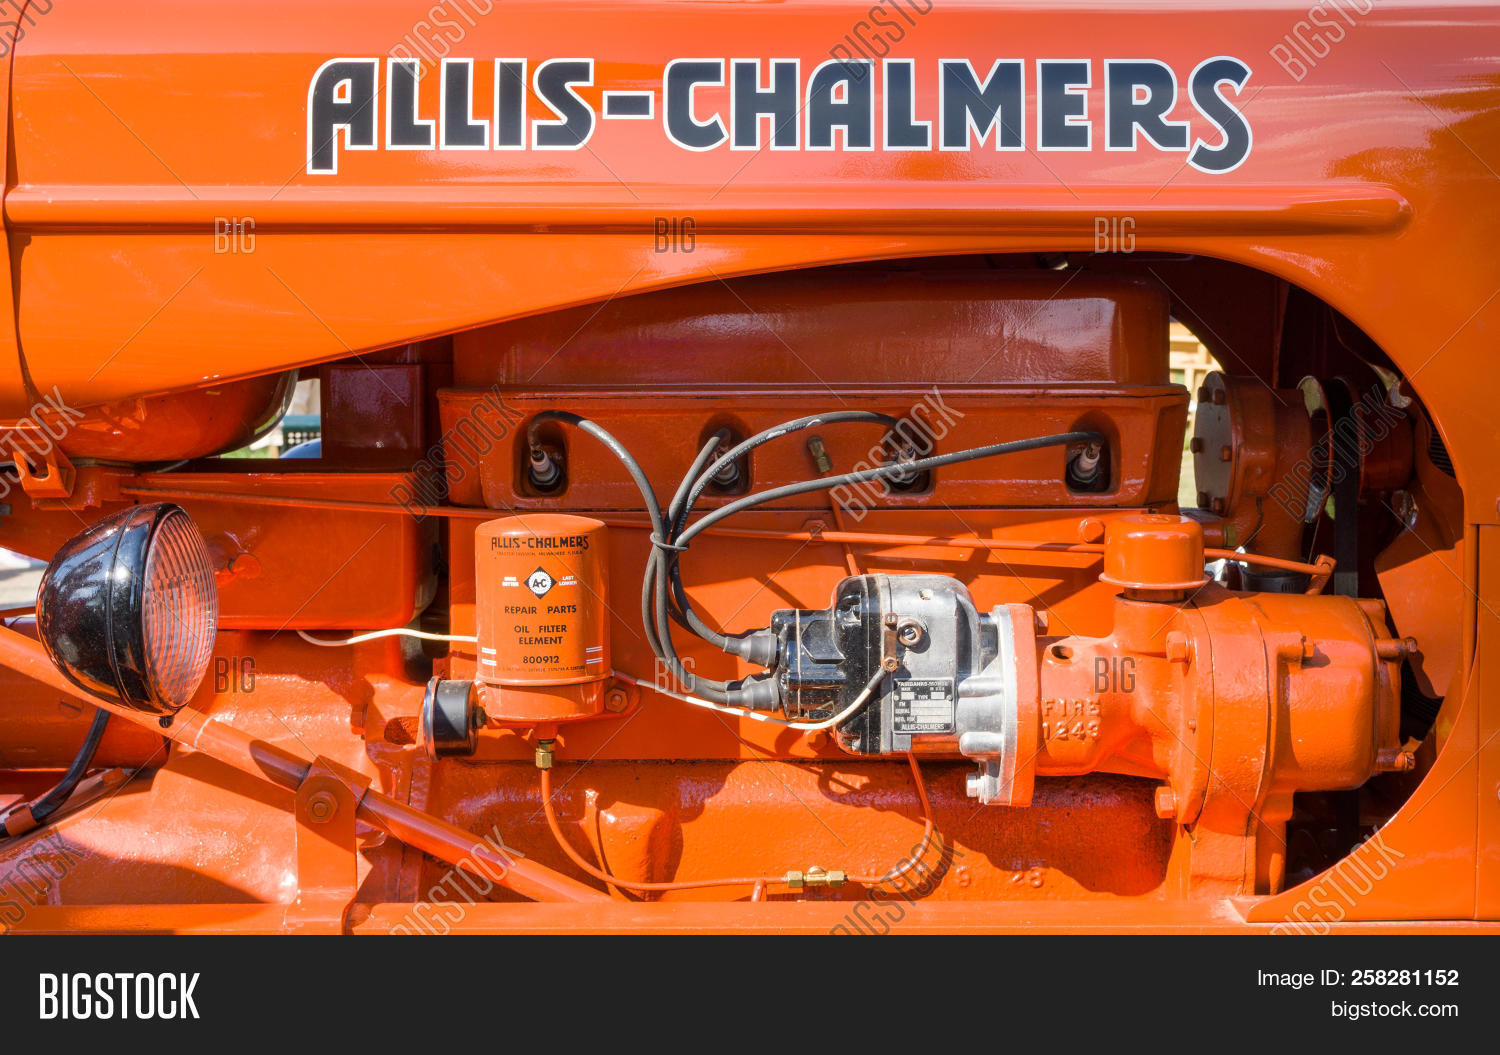 Vintage Allis-chalmers Image & Photo (Free Trial) | Bigstock